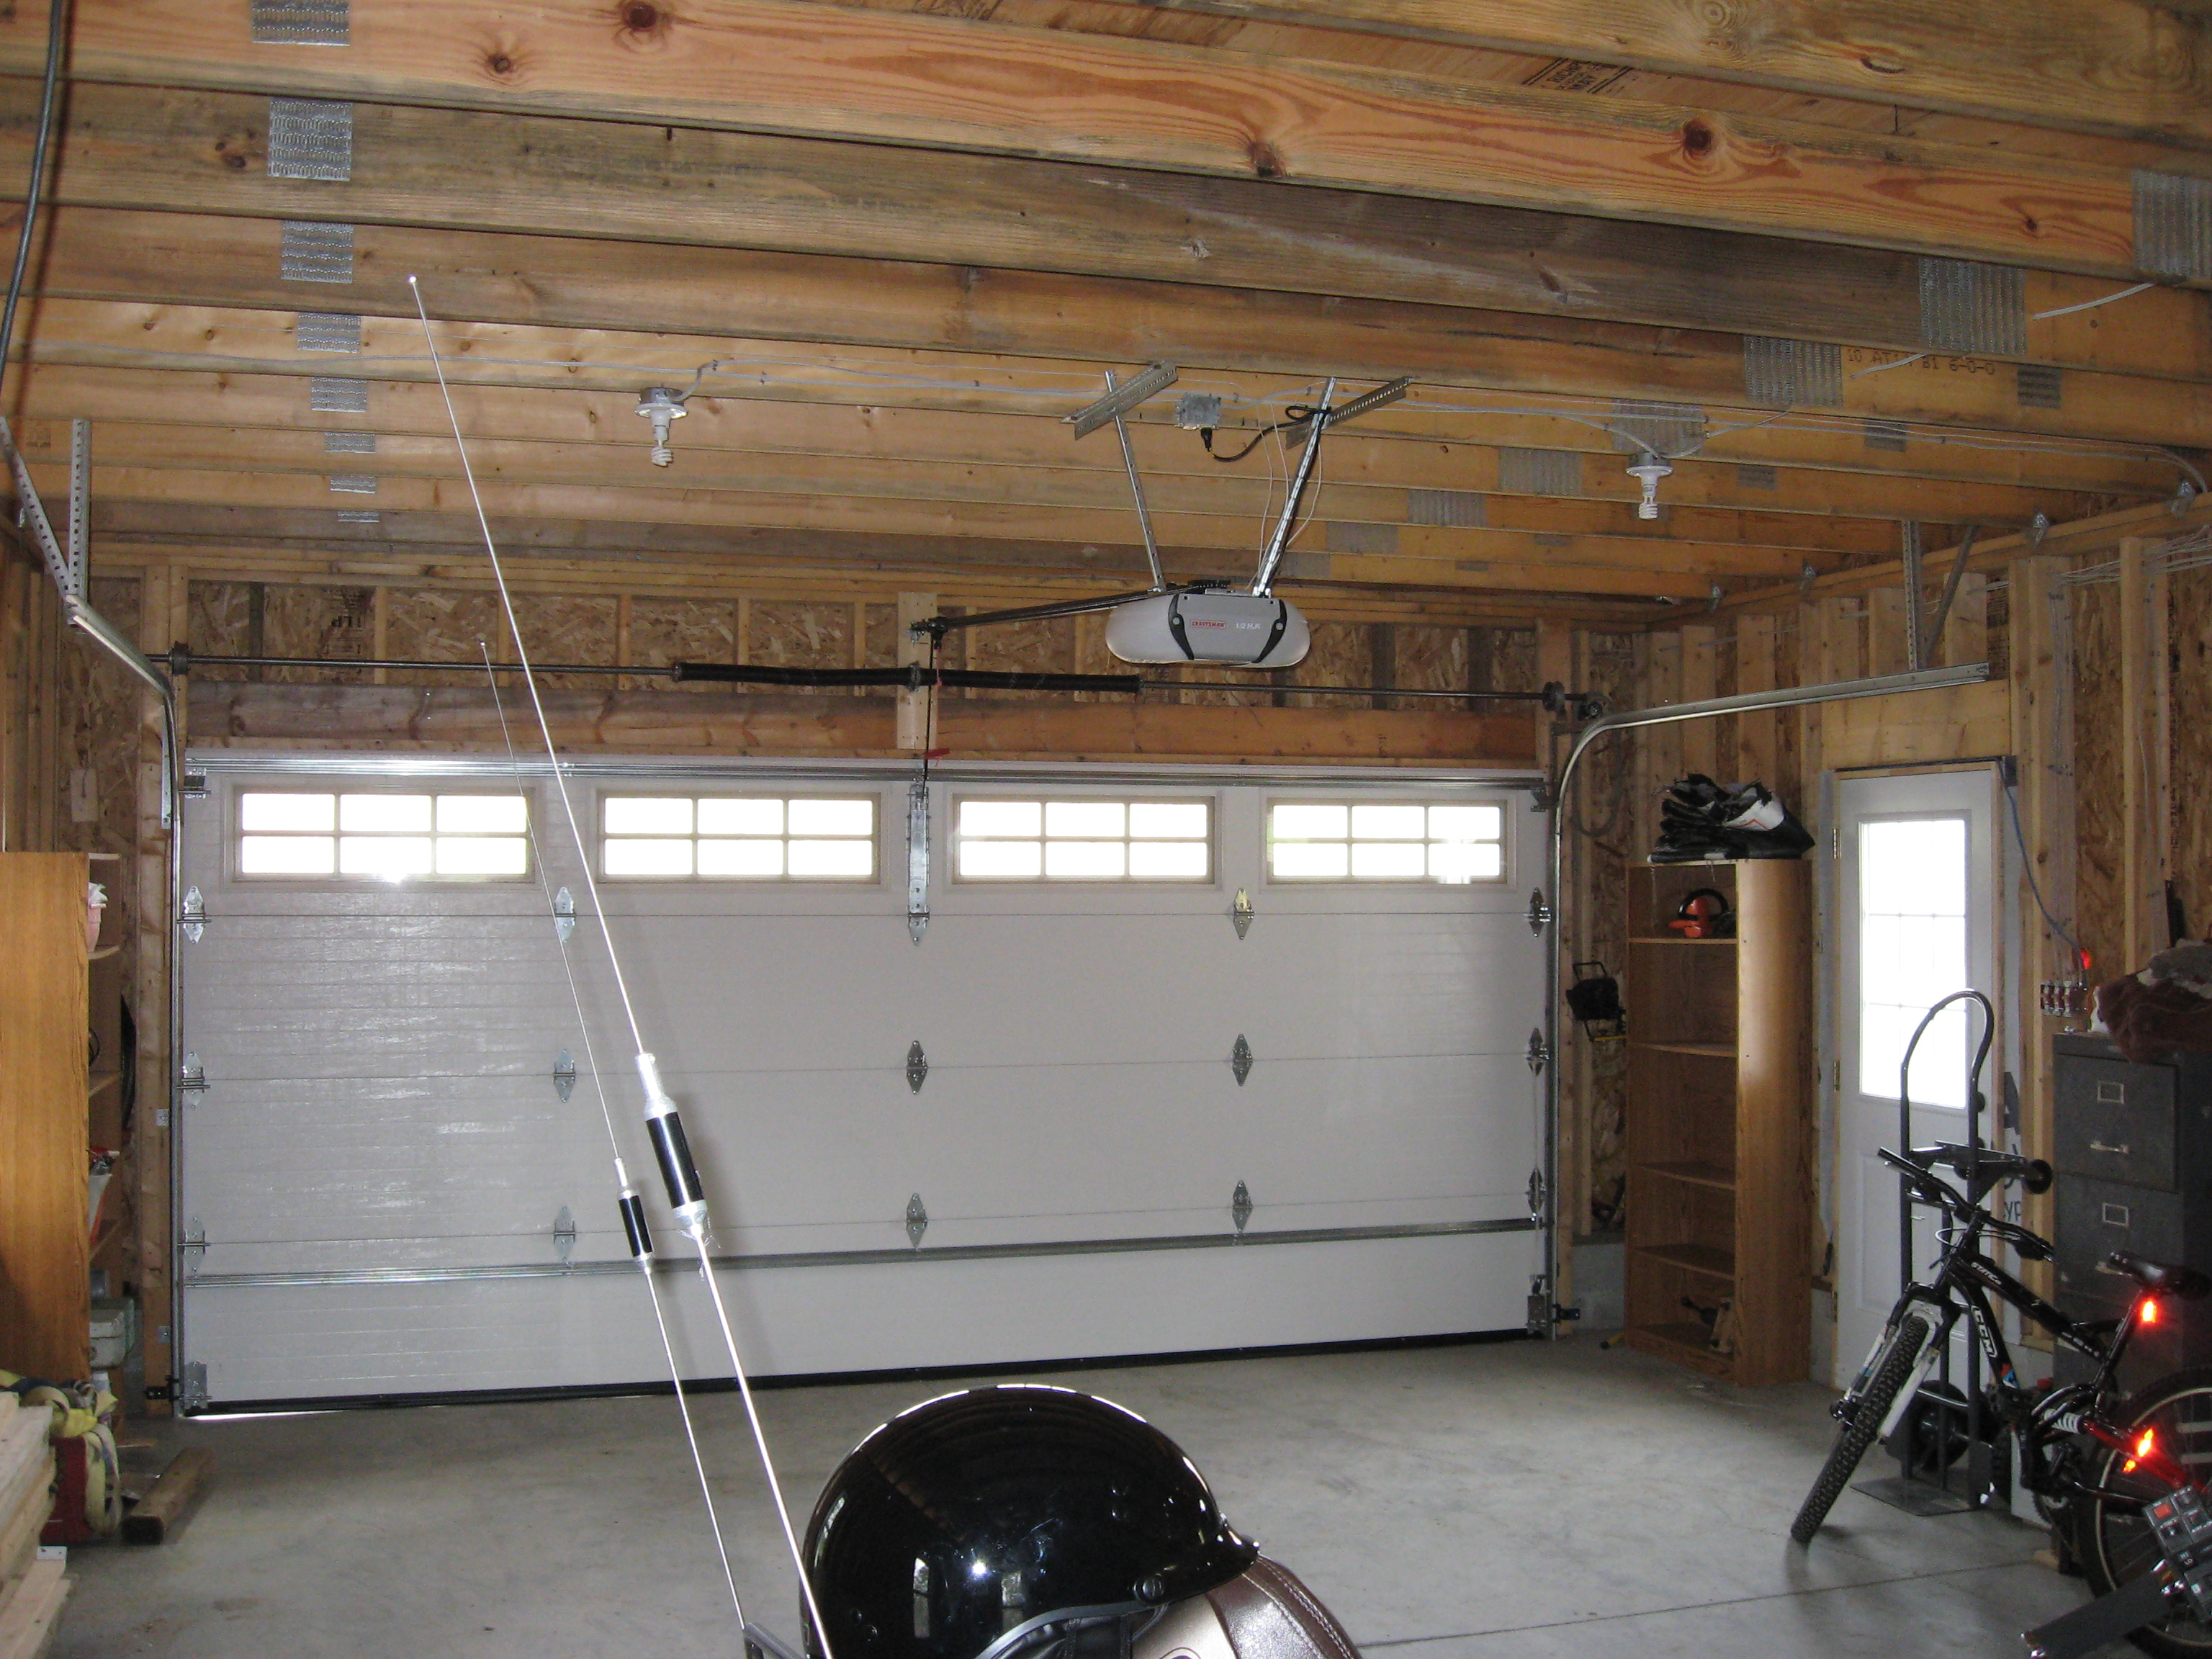 Unfinished Garage Kiser S Home Service Gallery 7 Conversion Wiring Partridge Bay After Construction Interior